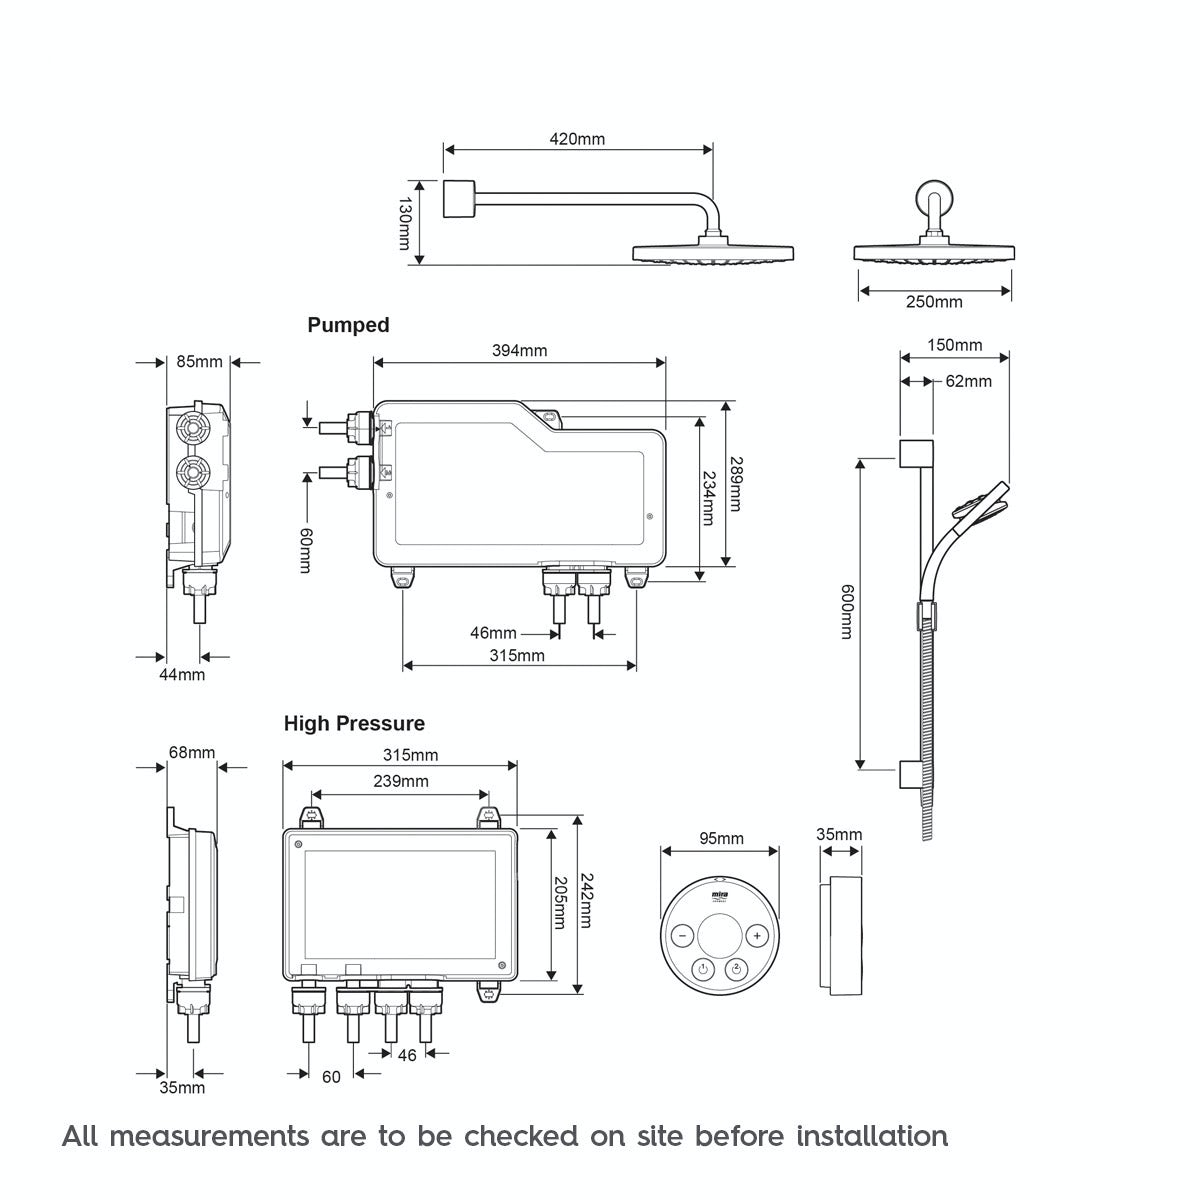 Dimensions for Mira Platinum dual rear fed digital shower standard